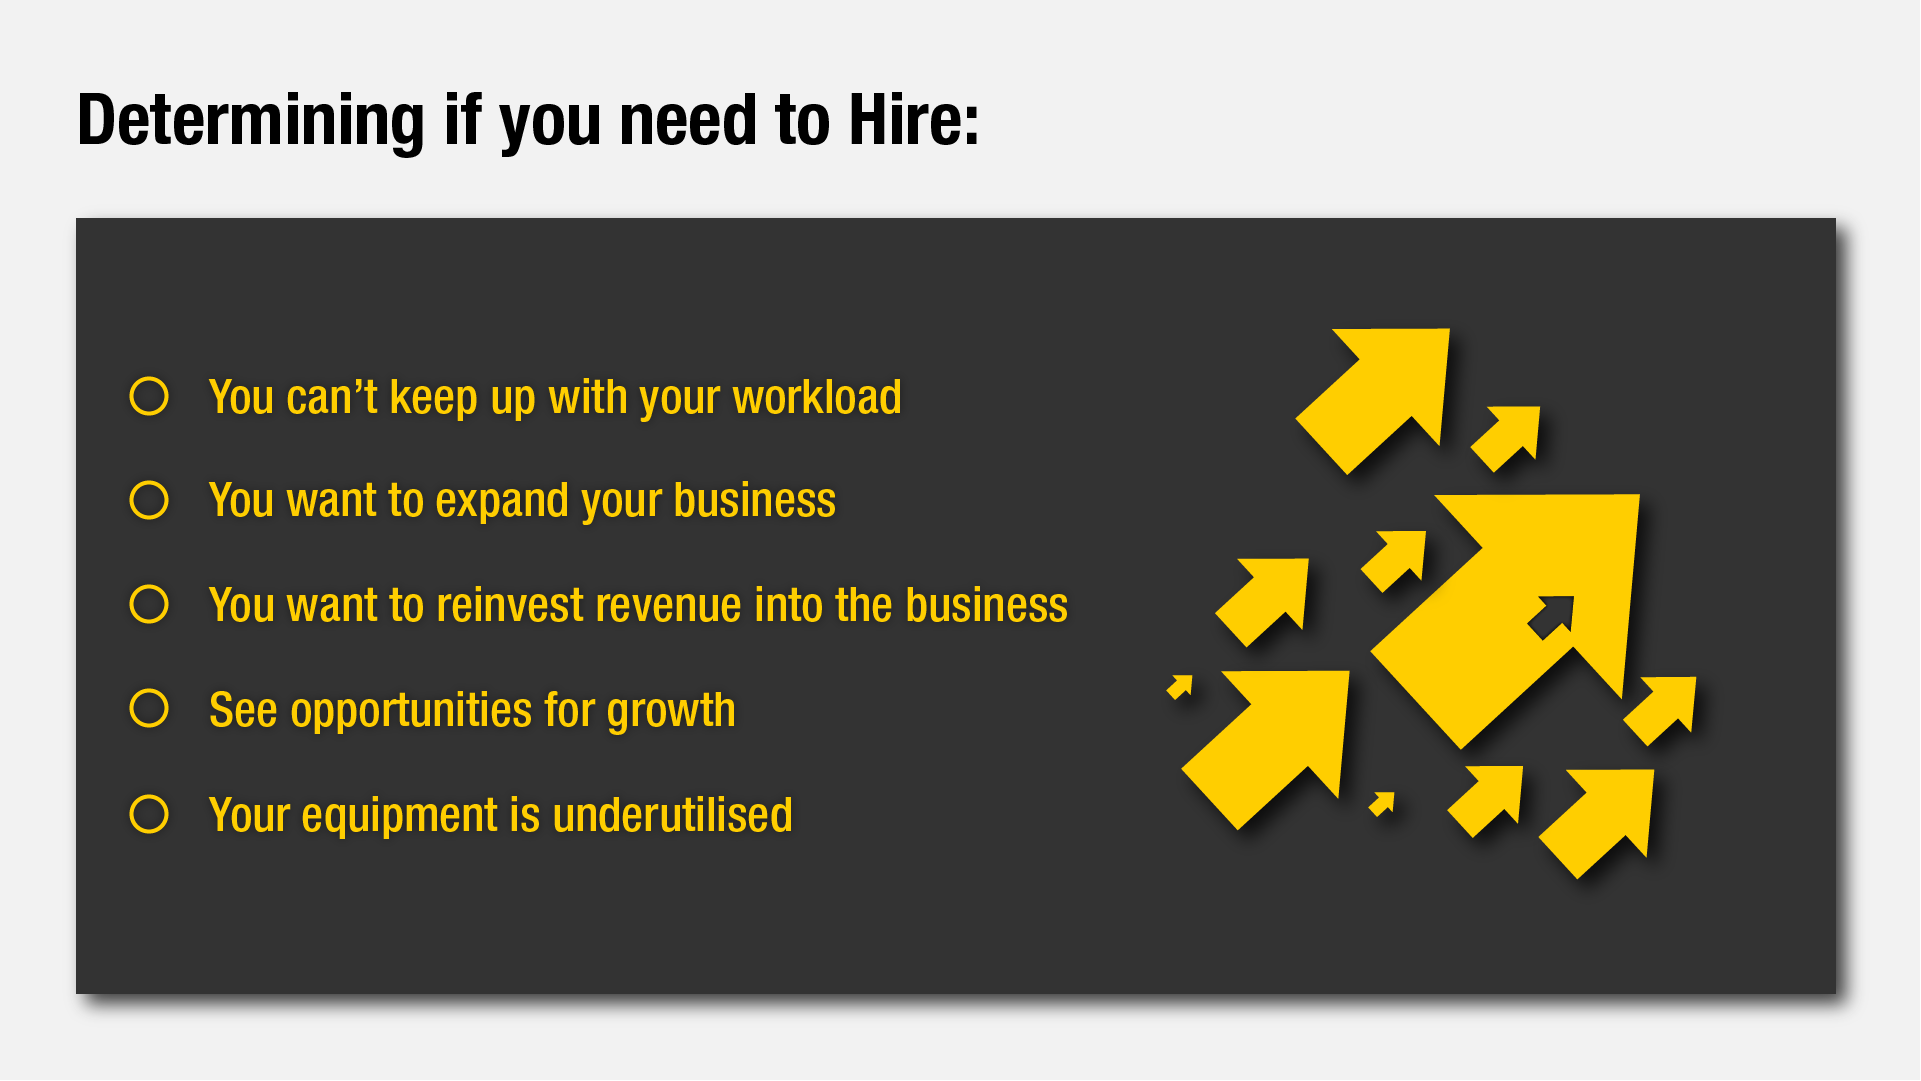 Determining to Hire in your business